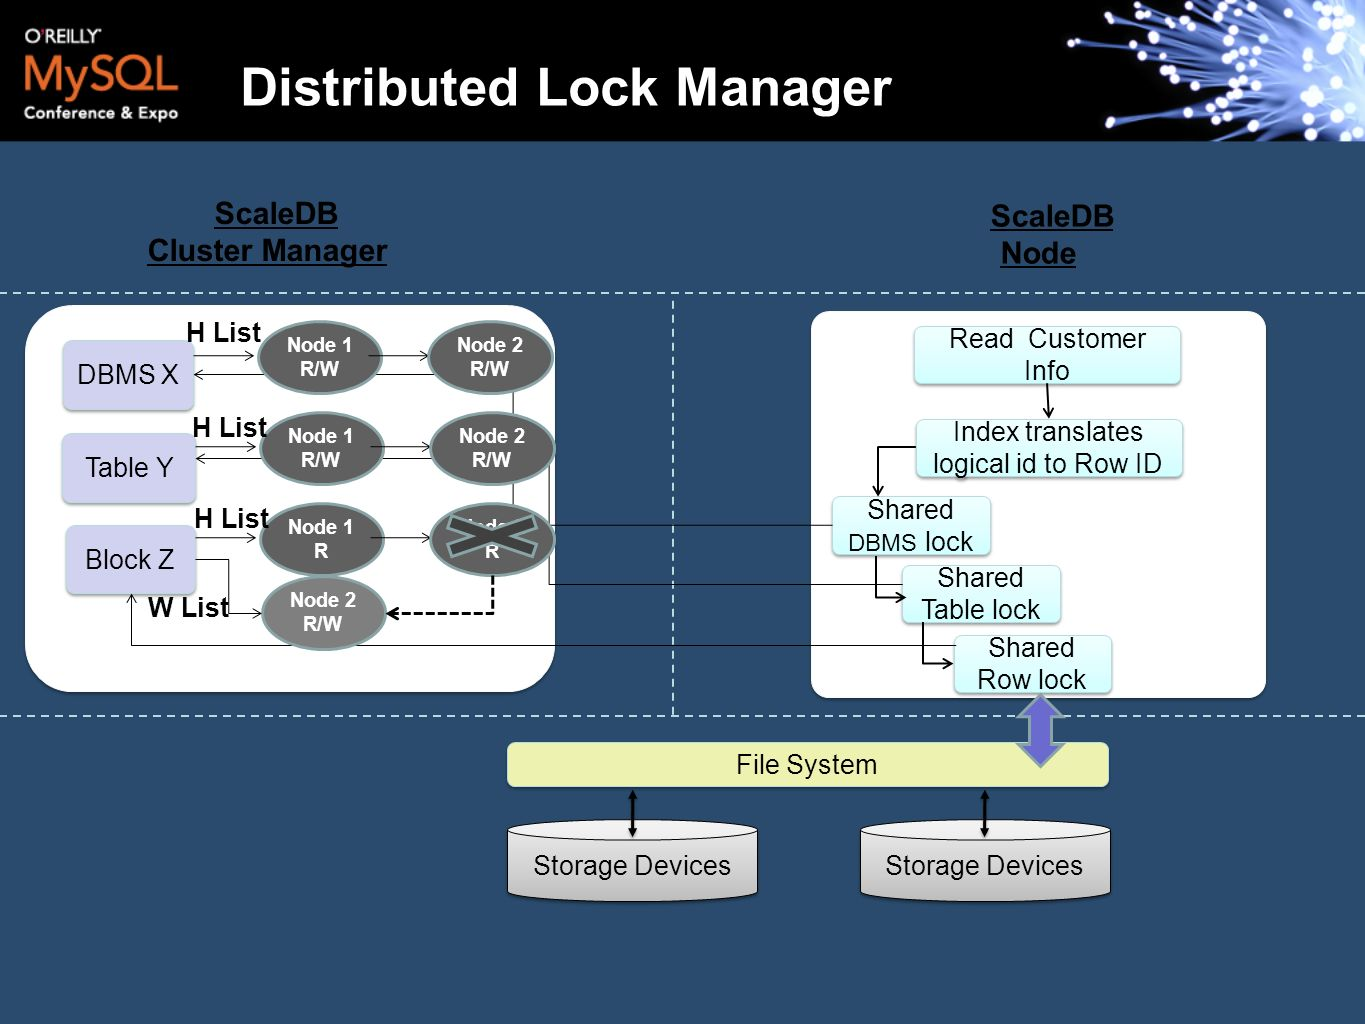 ScaleDB Cluster Manager ScaleDB Node Read Customer Info File System Storage Devices Distributed Lock Manager Index translates logical id to Row ID Sha